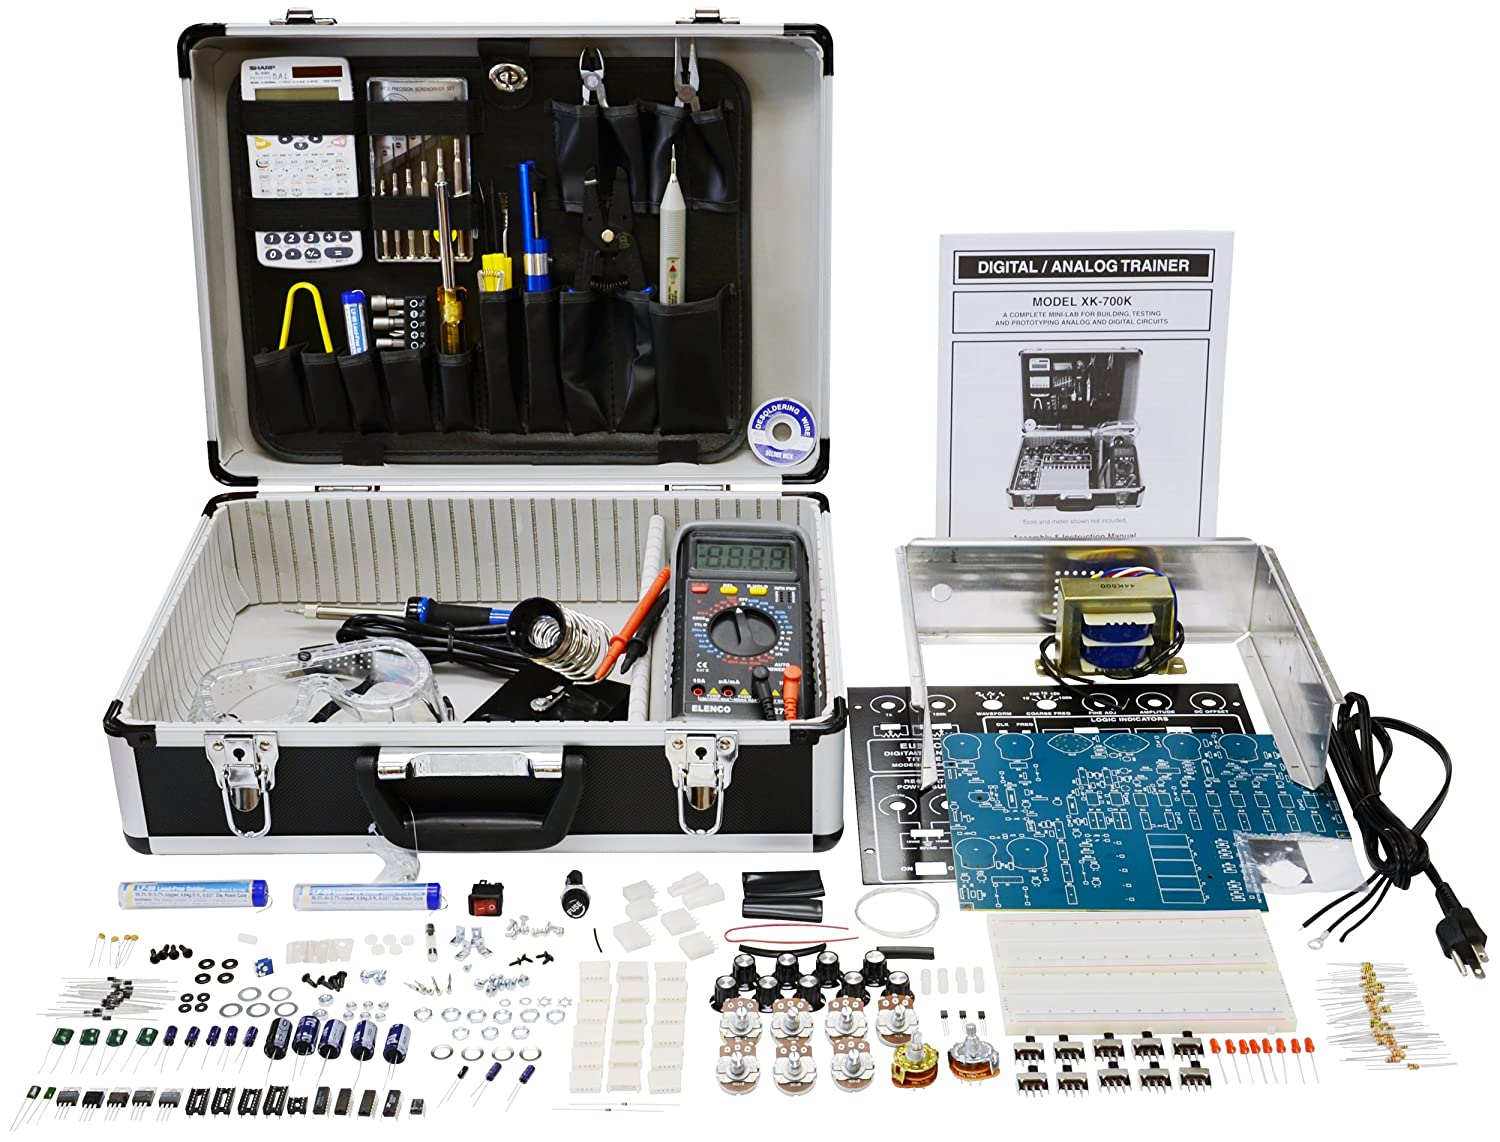 Elenco XK700TK Digital/Analog Trainer with Tools - Electronics And  Electricity Science Kits - Amazon.com